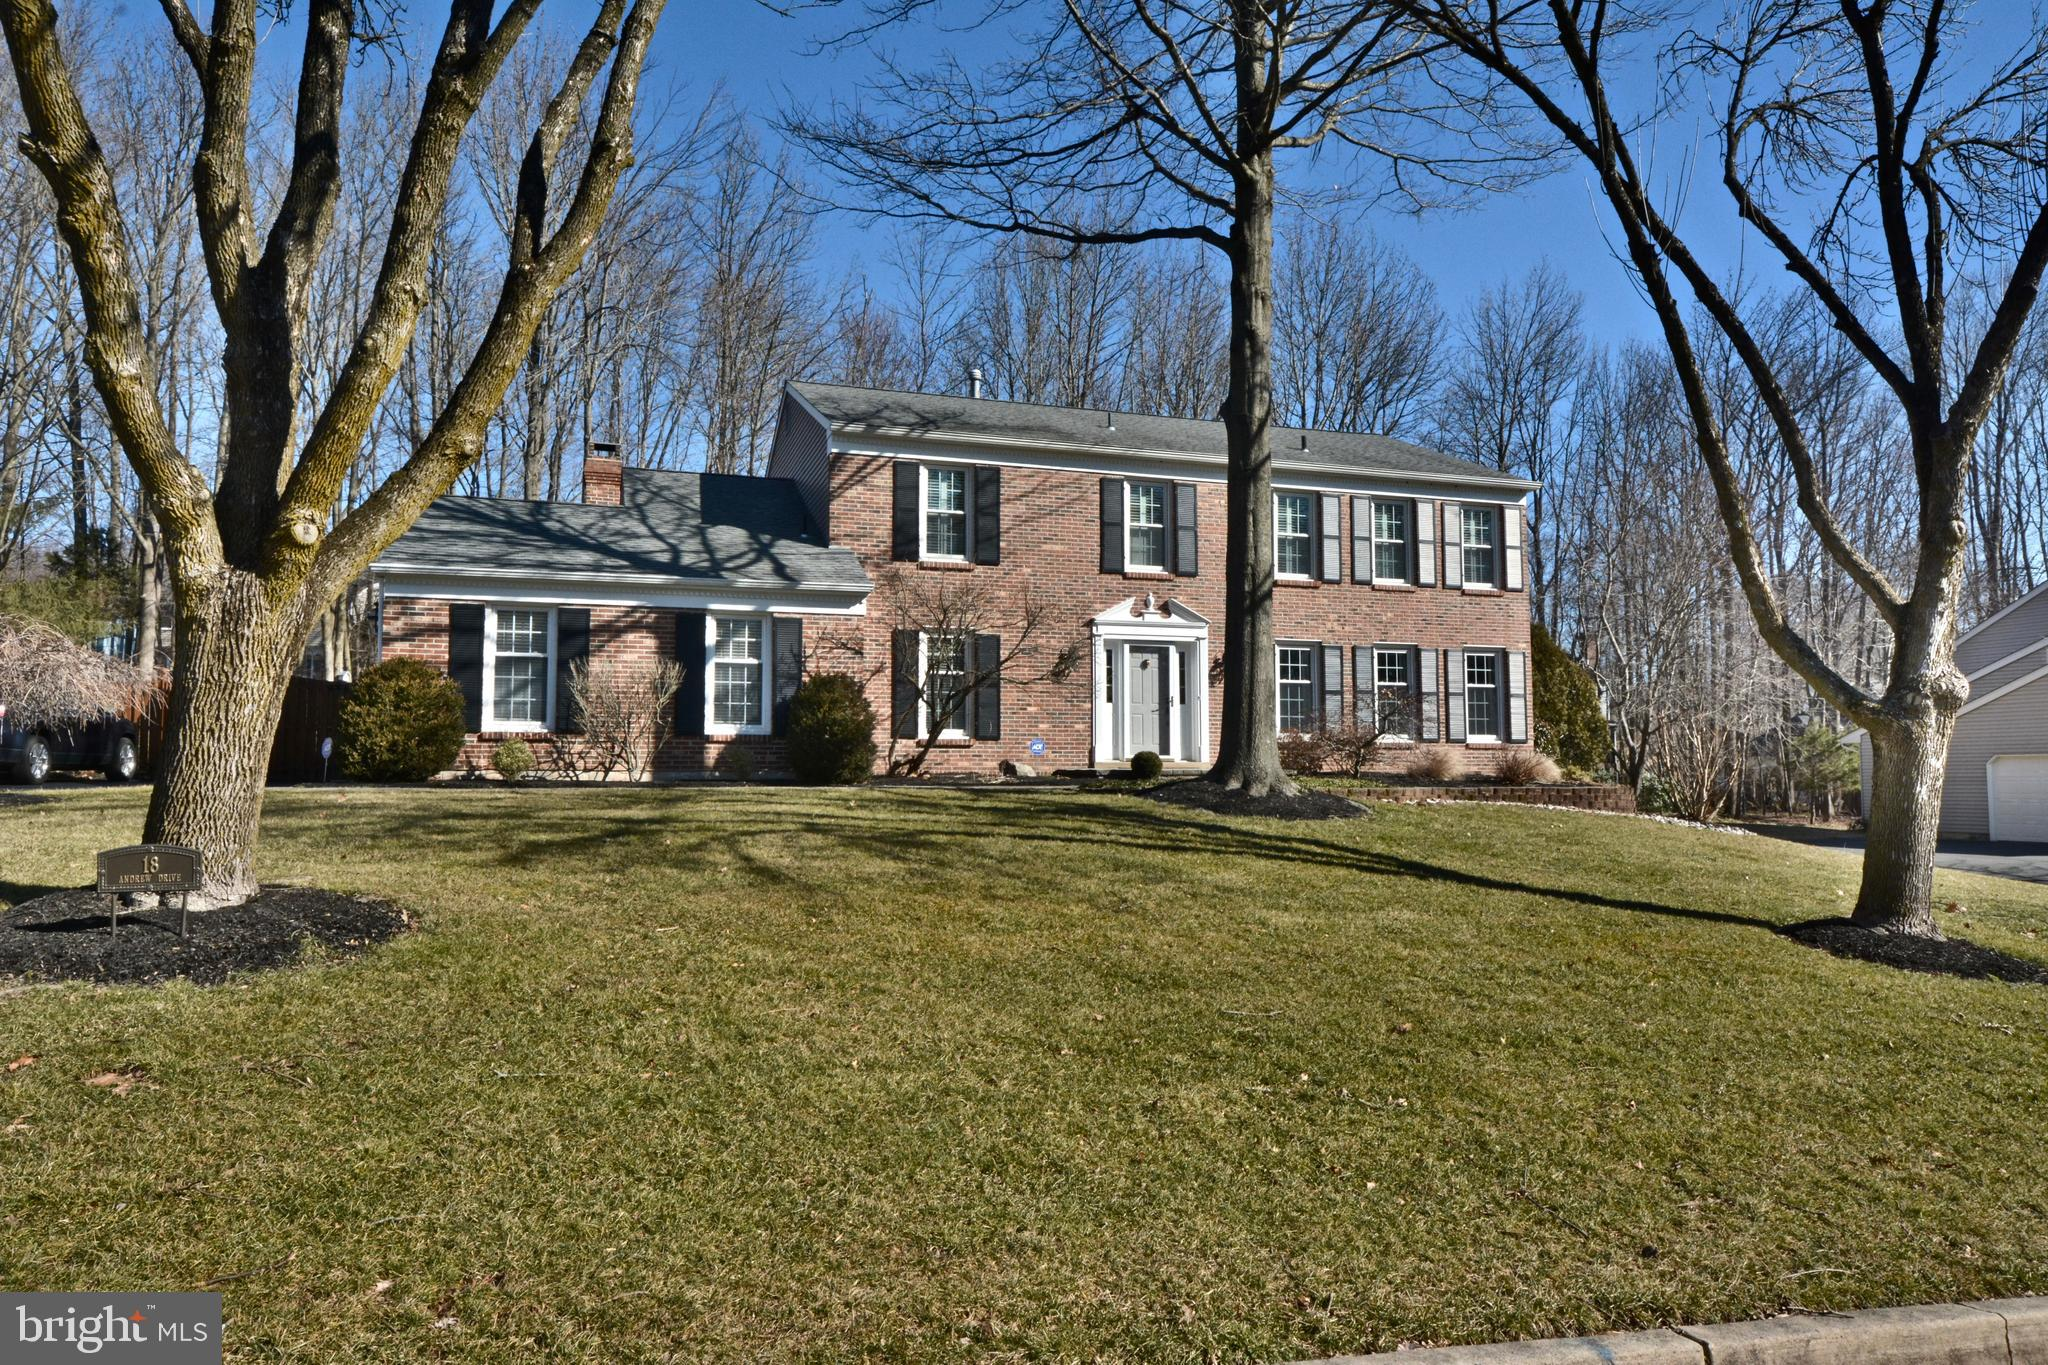 18 ANDREW DRIVE, LAWRENCE TOWNSHIP, NJ 08648